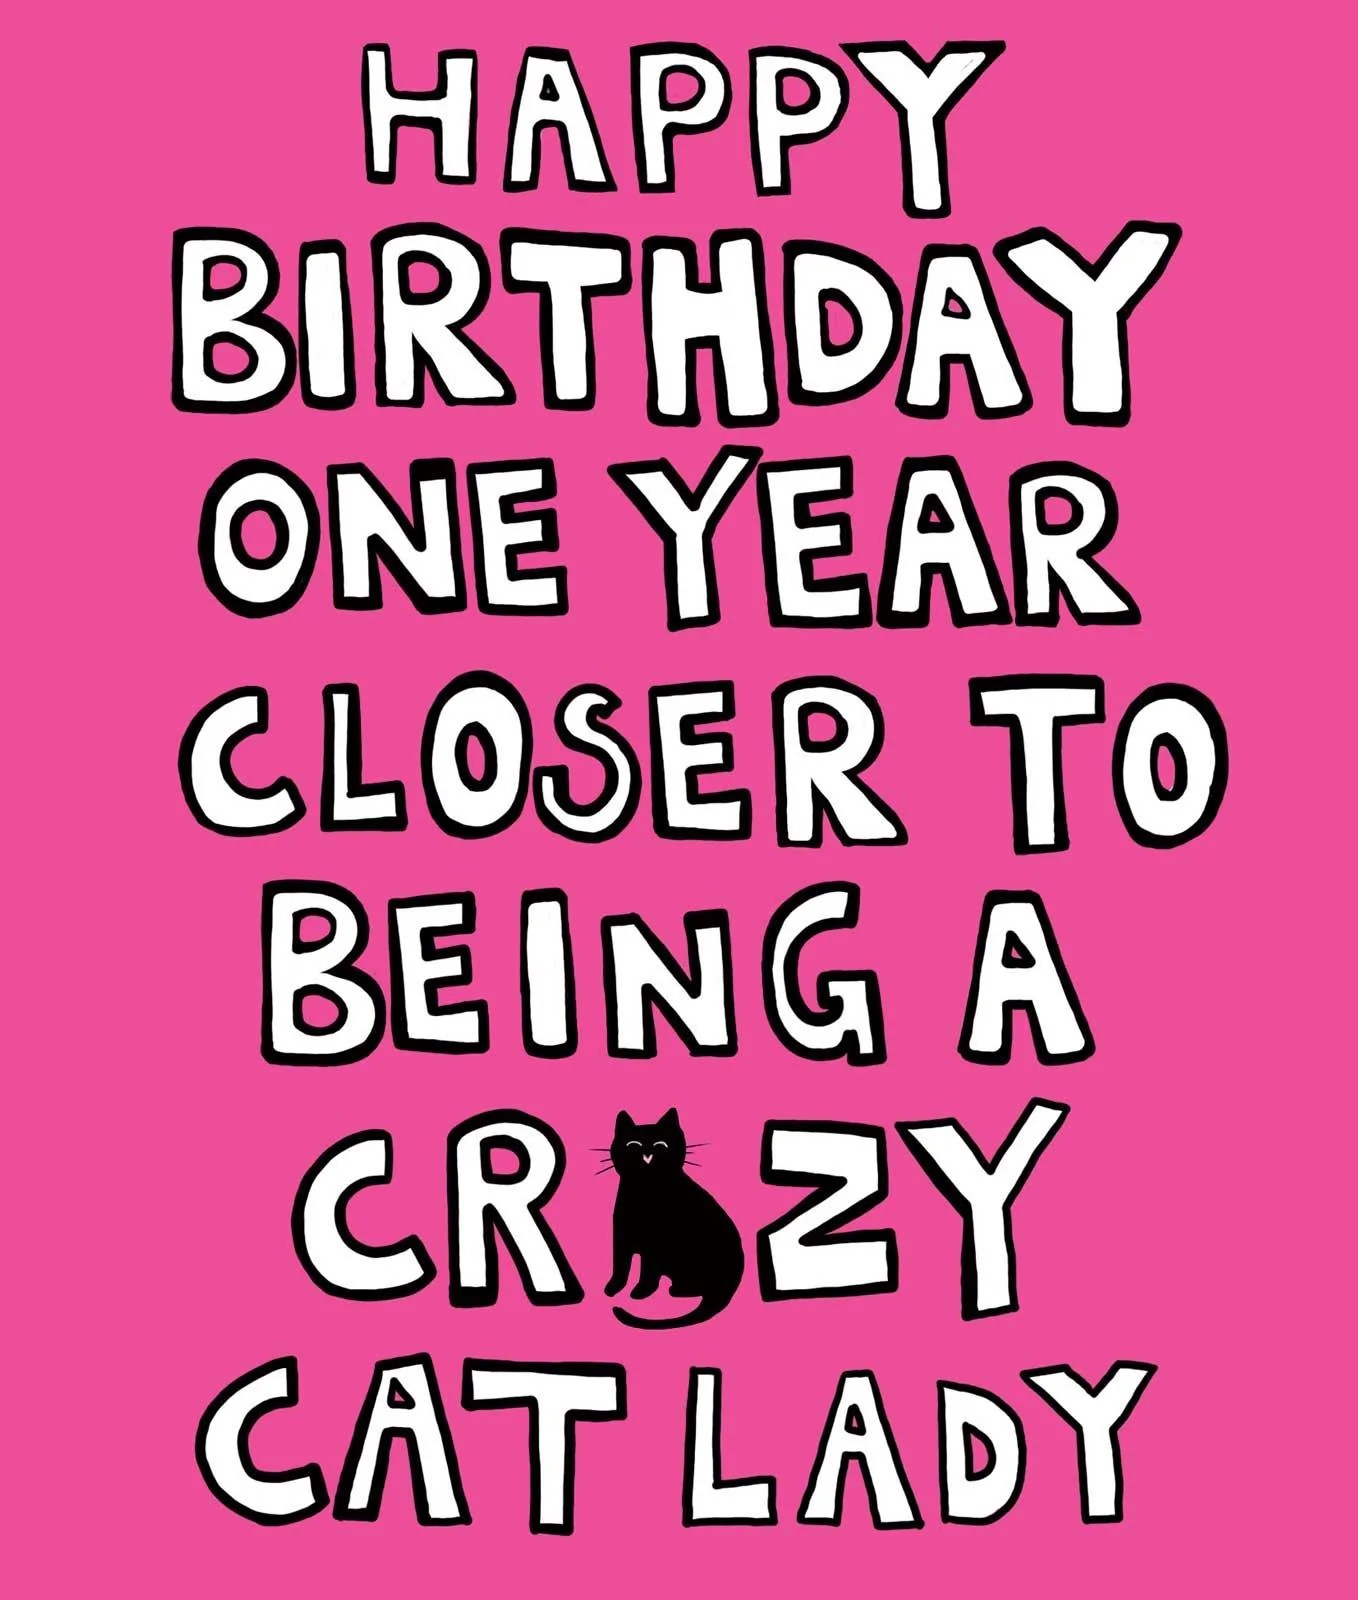 Crazy Cat Lady Birthday Card Purrfect Cat Gifts